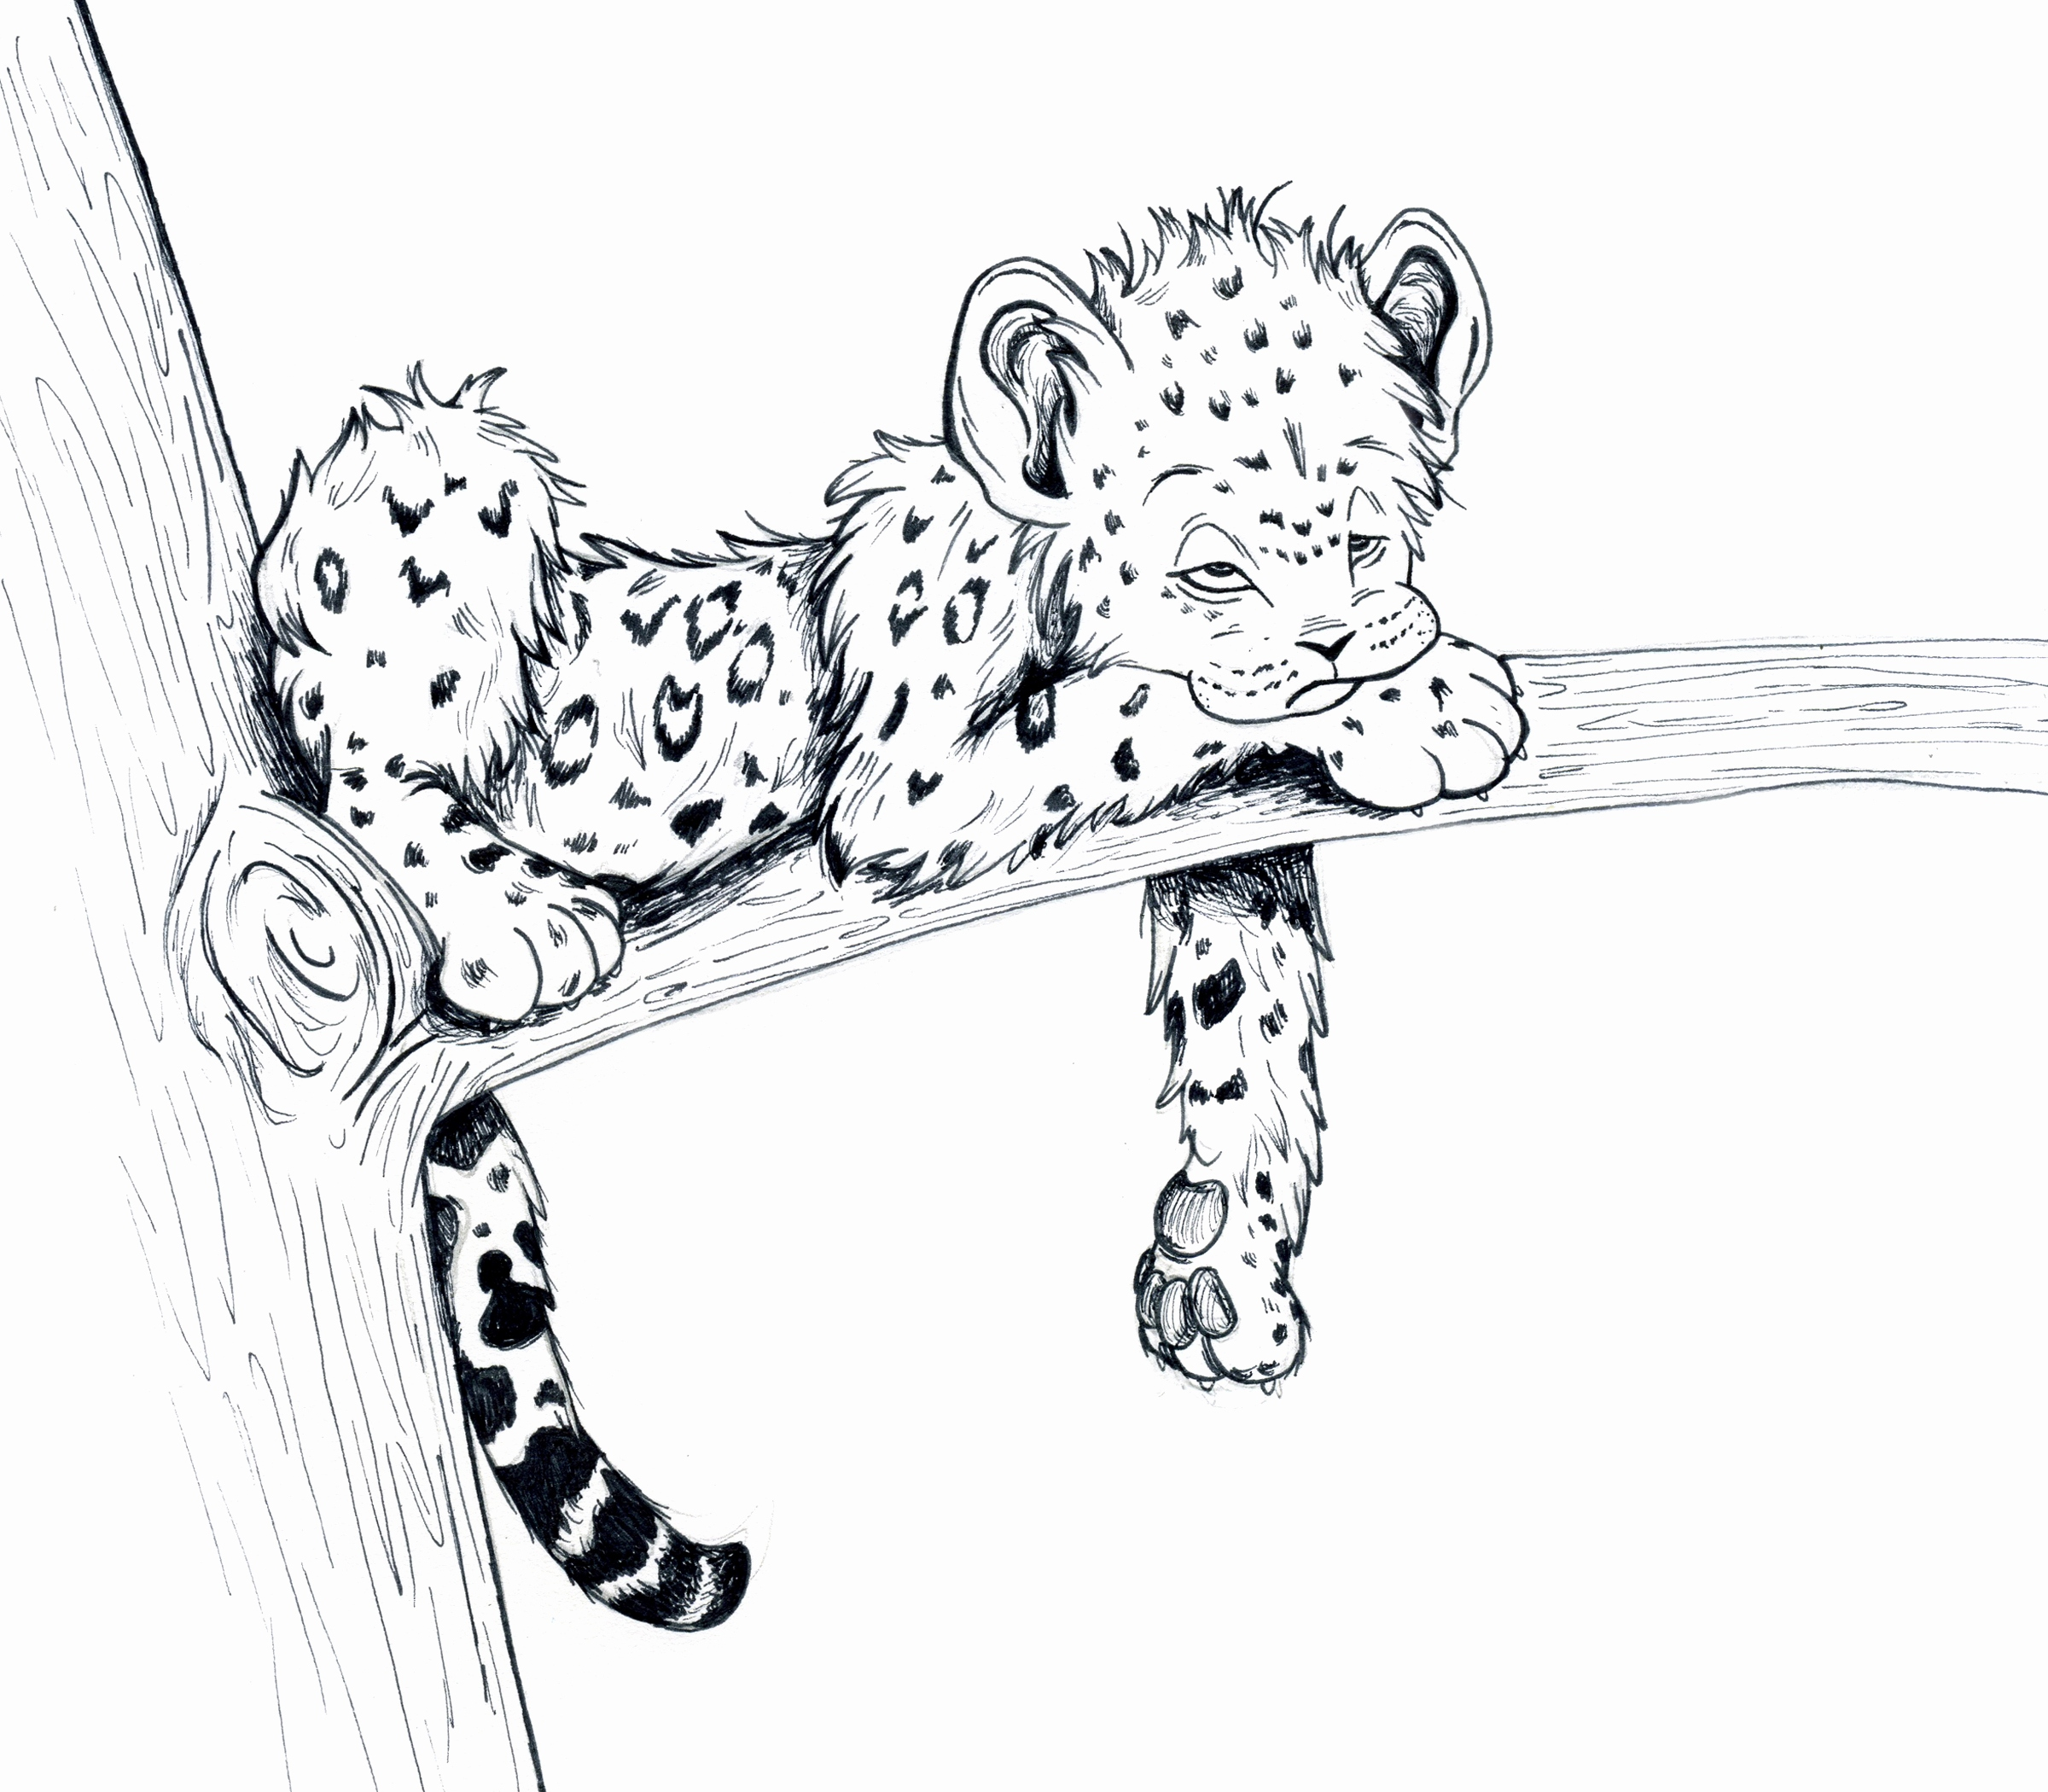 baby snow leopard drawing at free for personal use baby snow leopard drawing. Black Bedroom Furniture Sets. Home Design Ideas